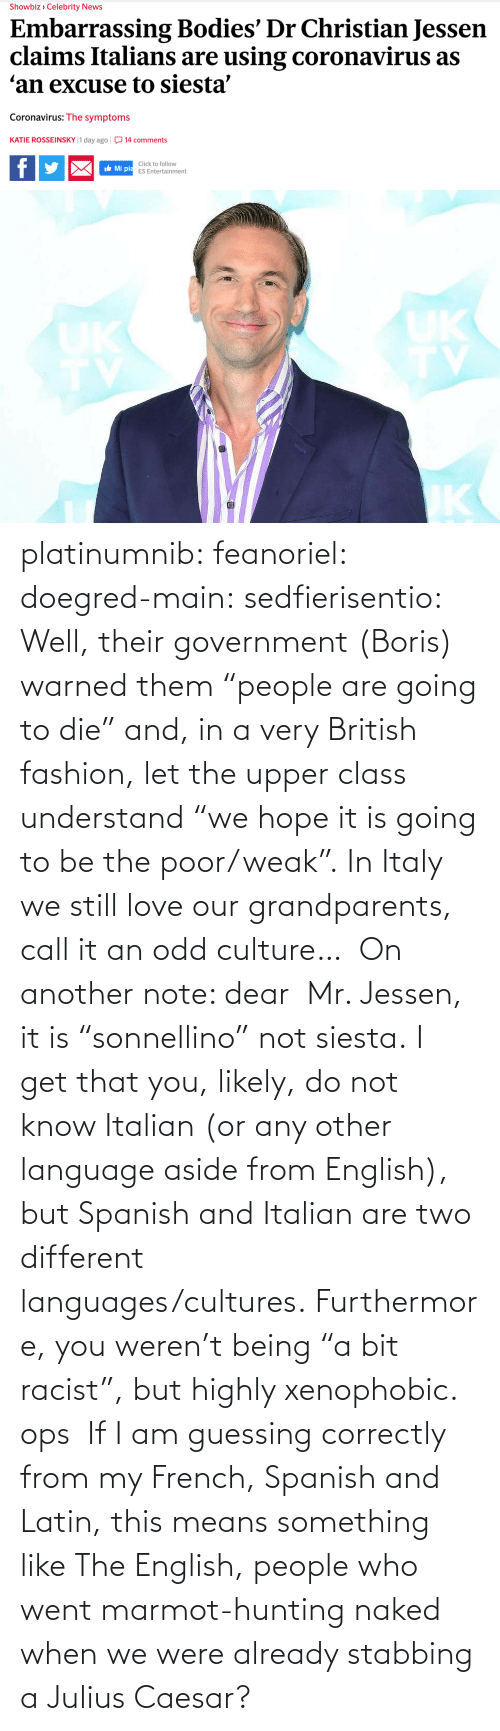 "Spanish: platinumnib:  feanoriel: doegred-main:  sedfierisentio:  Well, their government (Boris) warned them ""people are going to die"" and, in a very British fashion, let the upper class understand ""we hope it is going to be the poor/weak"". In Italy we still love our grandparents, call it an odd culture…  On another note: dear  Mr. Jessen, it is ""sonnellino"" not siesta. I get that you, likely, do not know Italian (or any other language aside from English), but Spanish and Italian are two different languages/cultures. Furthermore, you weren't being ""a bit racist"", but highly xenophobic.   ops   If I am guessing correctly from my French, Spanish and Latin, this means something like The English, people who went marmot-hunting naked when we were already stabbing a Julius Caesar?"